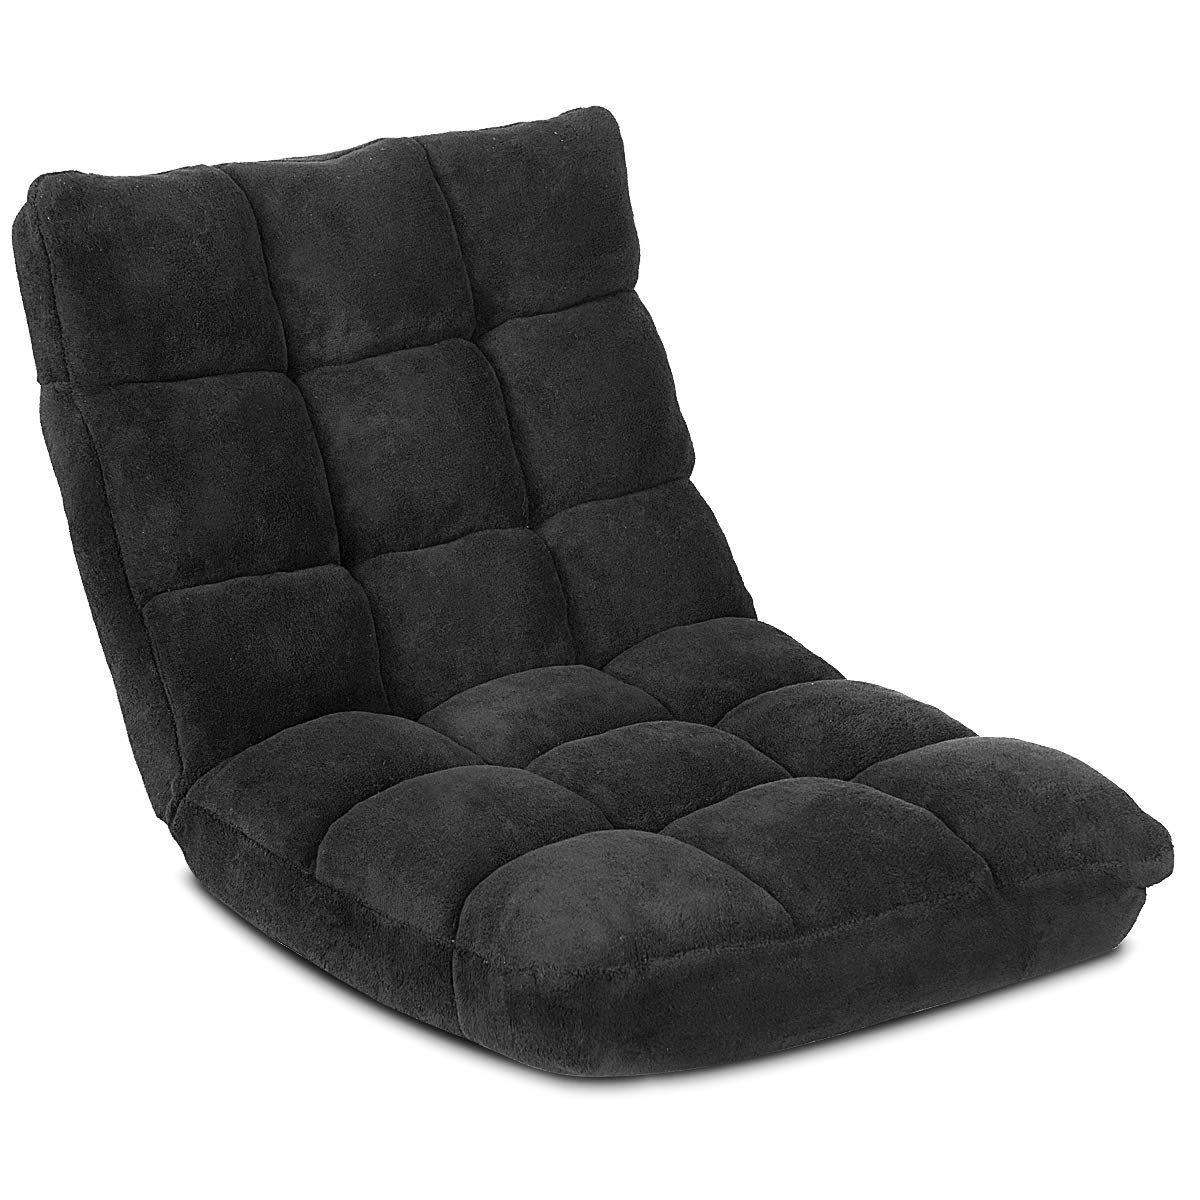 Giantex Floor Folding Gaming Sofa Chair Lounger Folding Adjustable 14-Position Sleeper Bed Couch Recliner (Black)